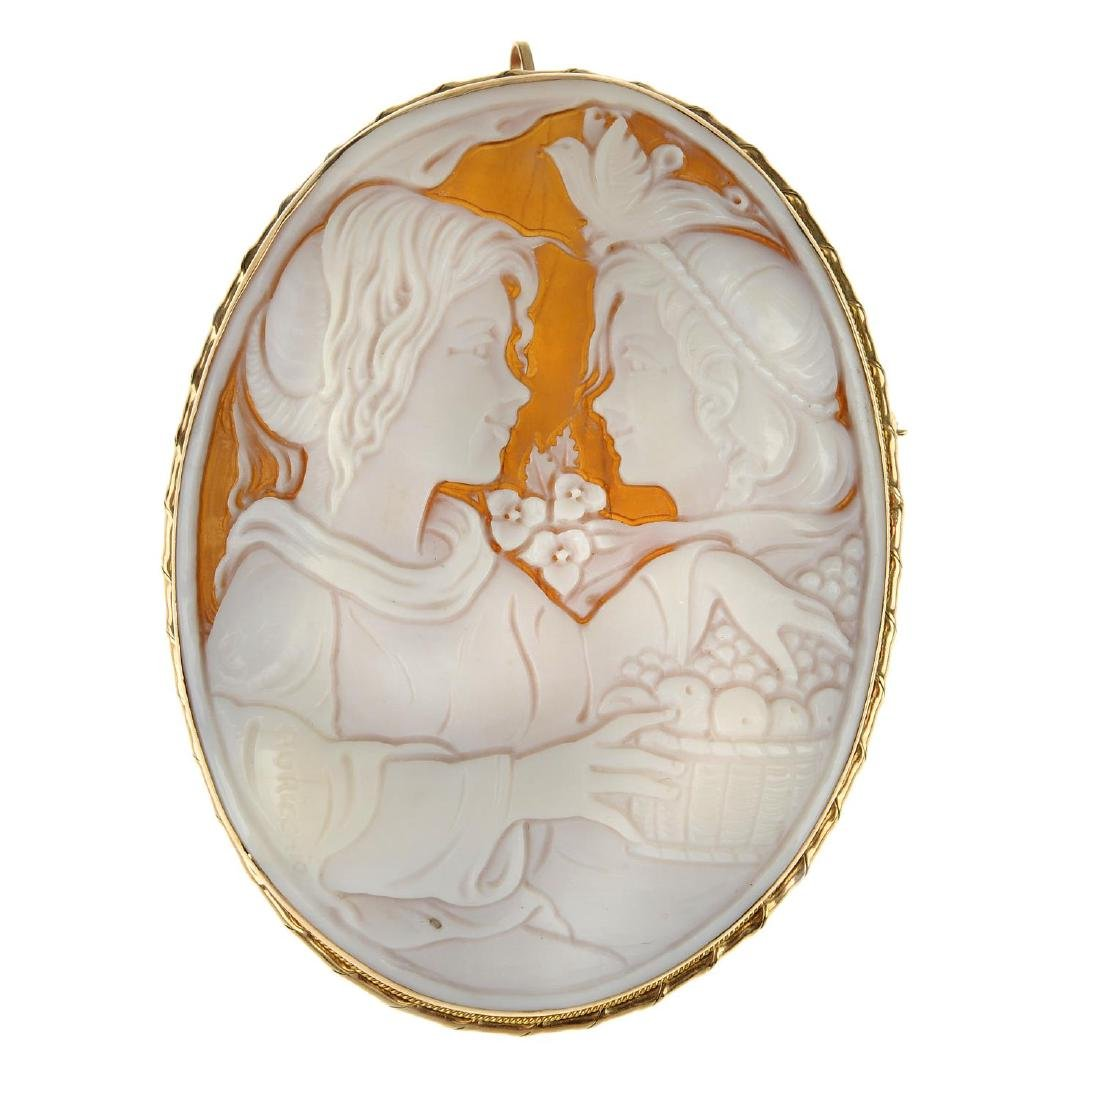 A cameo brooch. Of oval outline, depicting two young